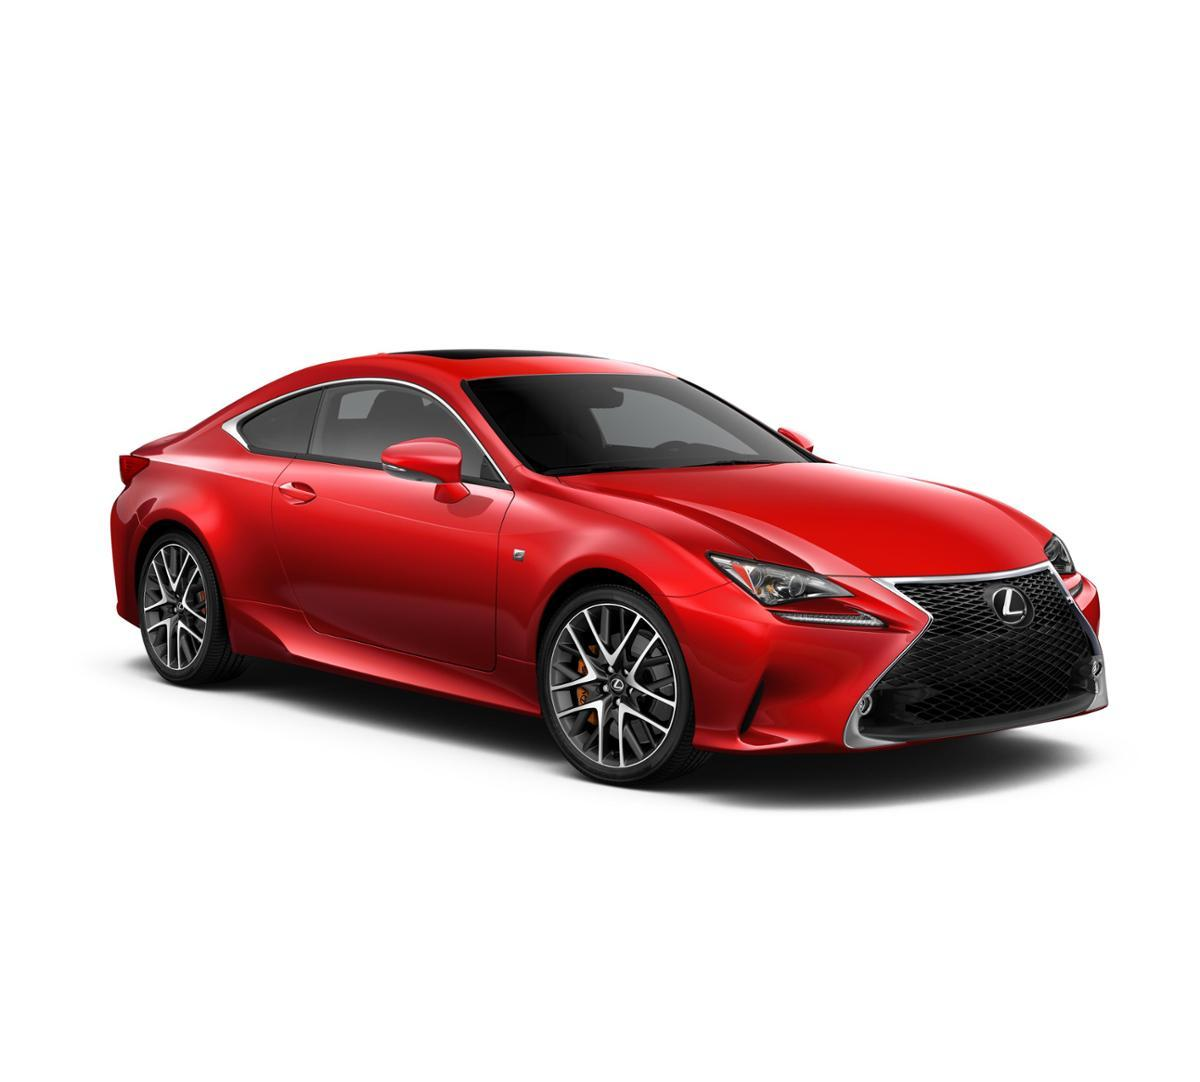 2017 Lexus Rc Exterior: 2017 Lexus RC Turbo 200t In Infrared For Sale In CA